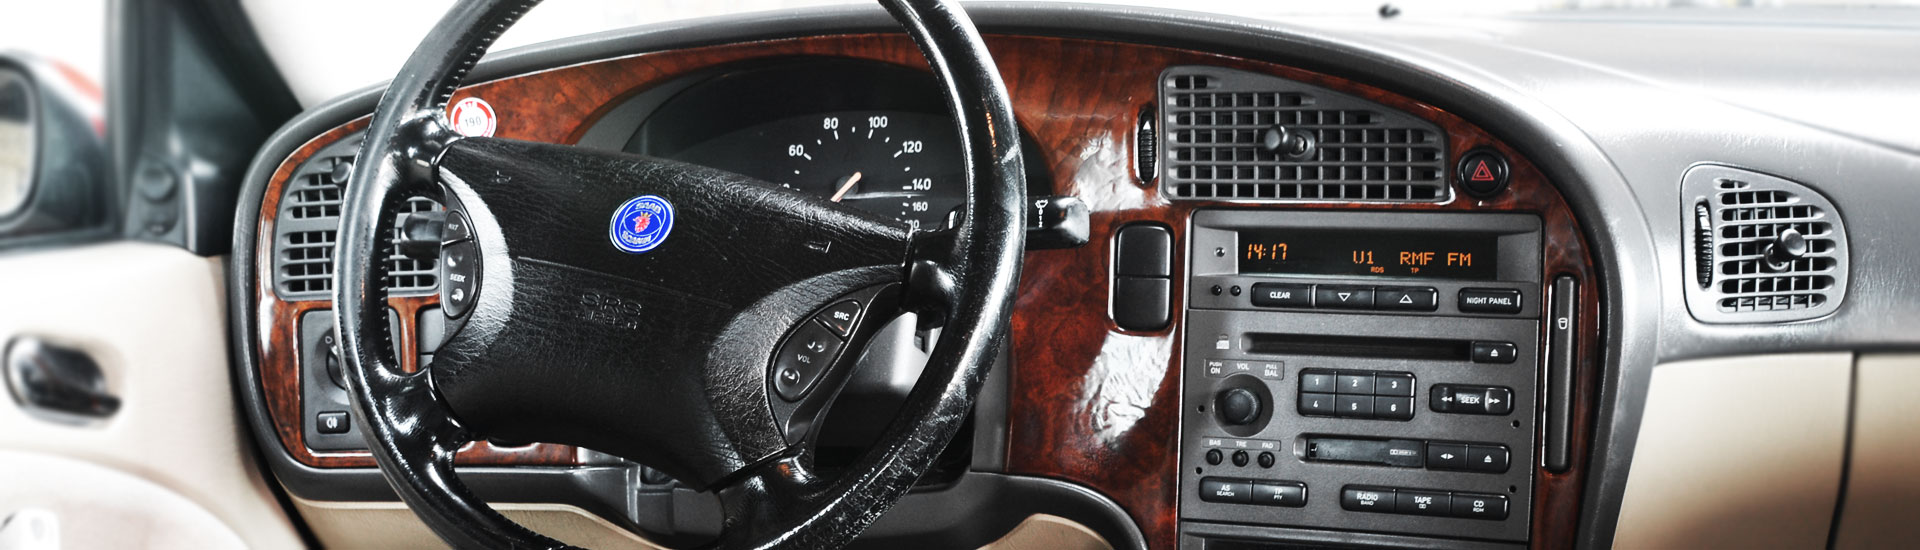 2011 Saab 9-3 Custom Dash Kits